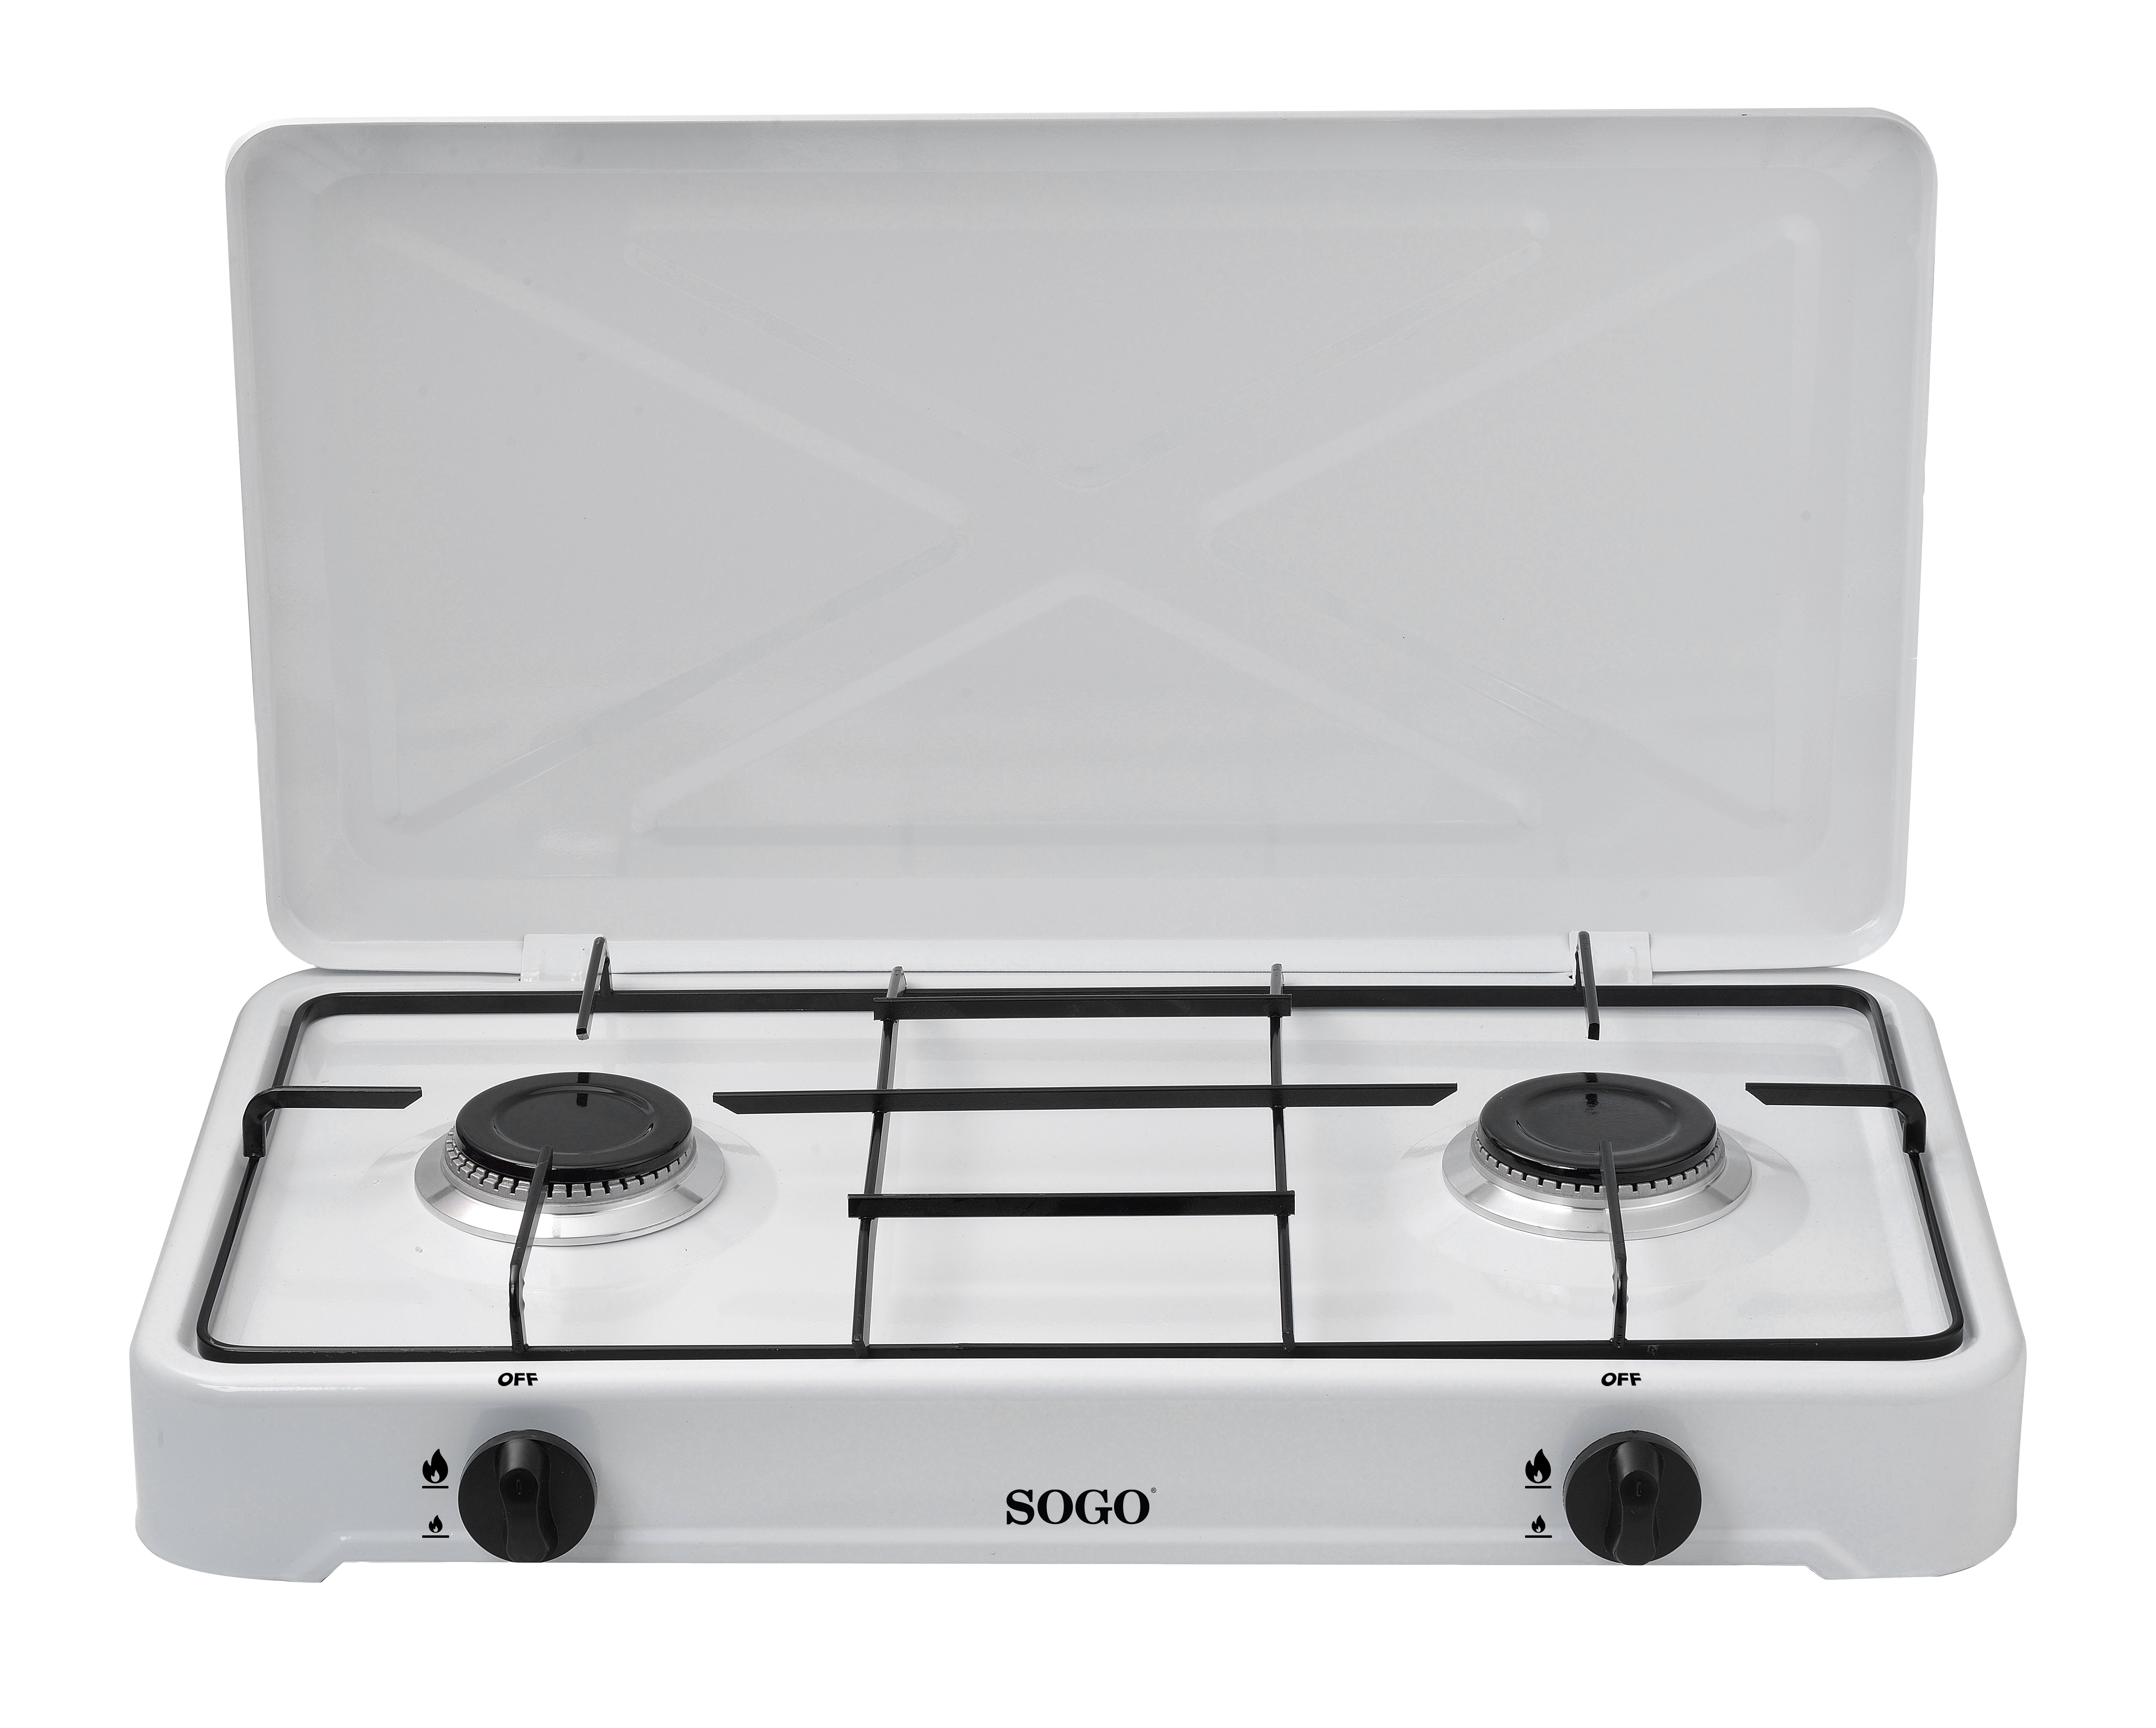 KITCHEN 2 GAS STOVE-DIA 18.5CM